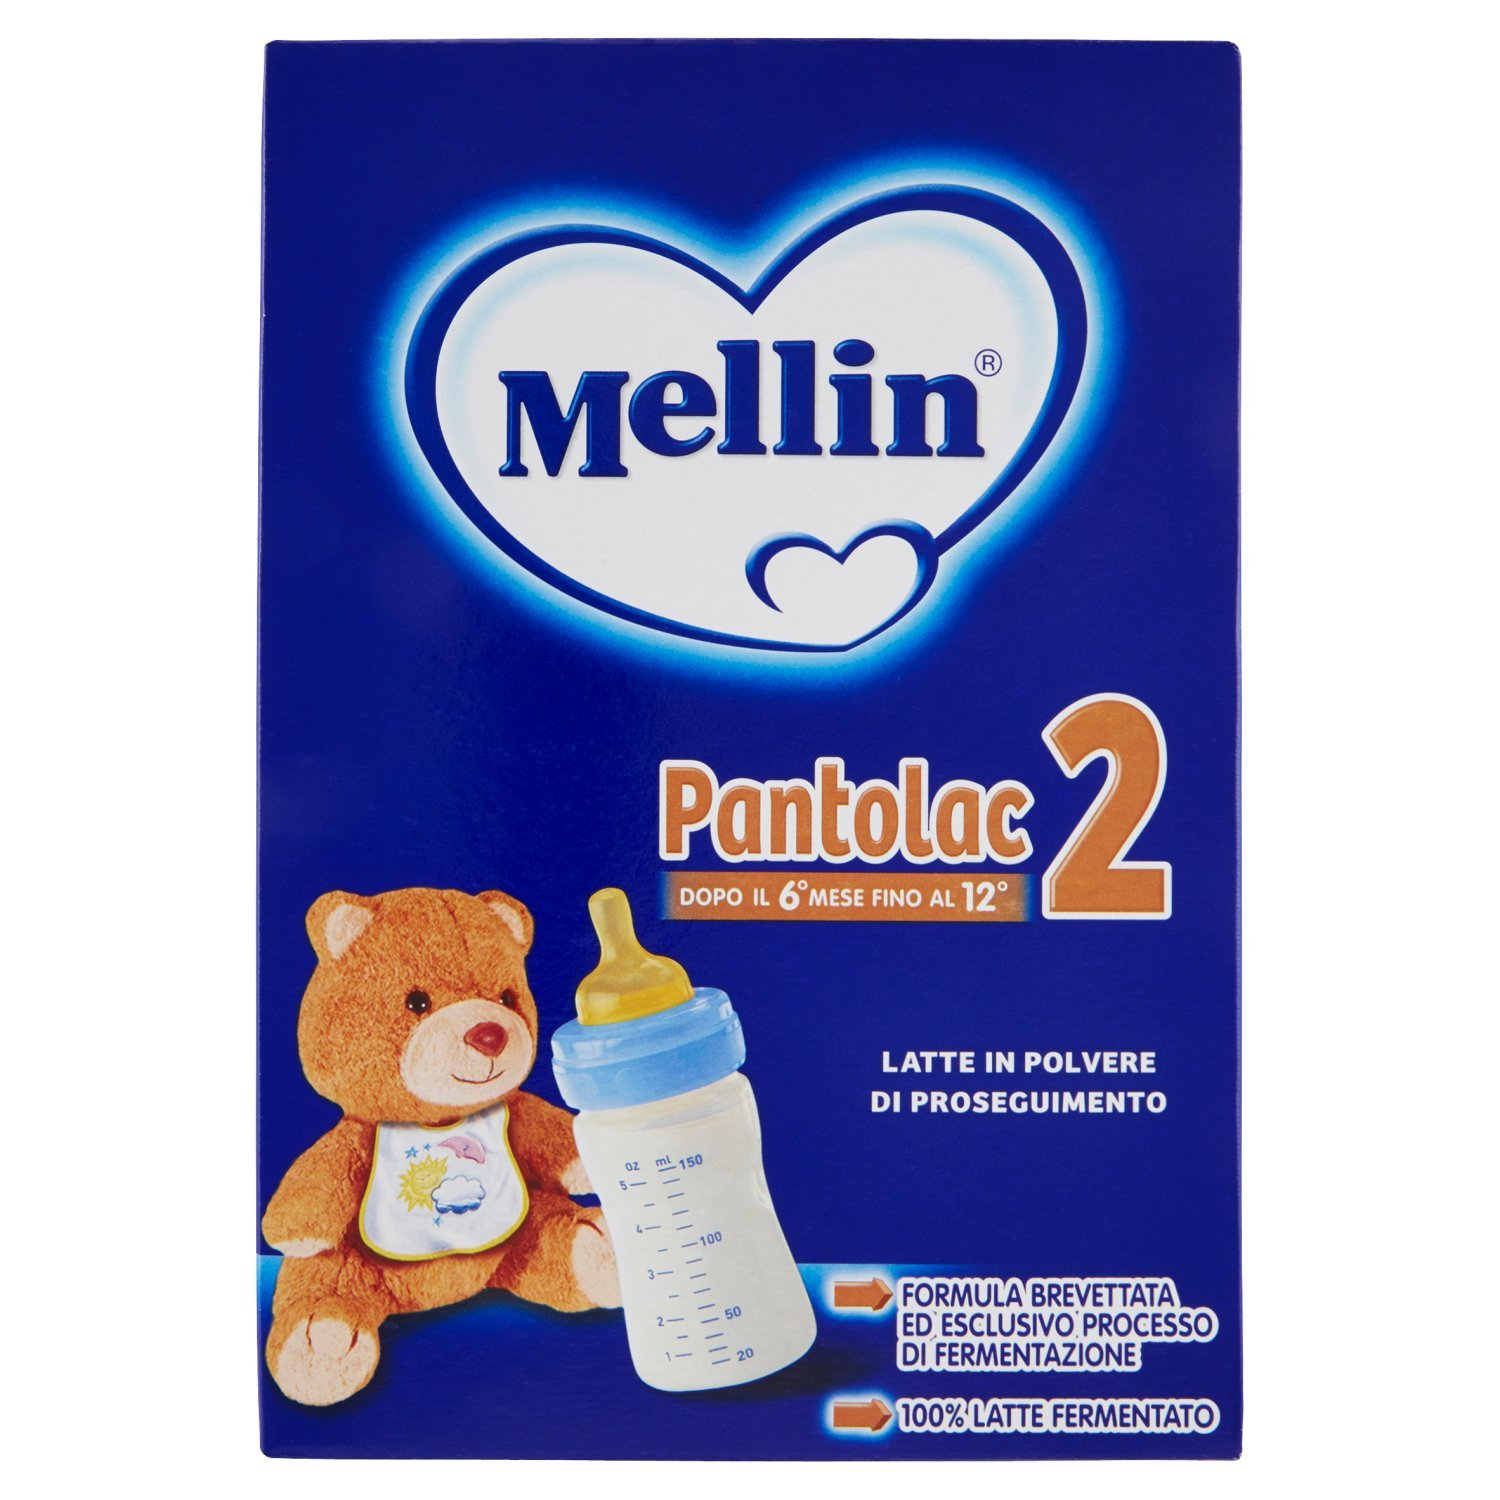 Amazon.com: Mellin Milk Pantolac Continuation 2 Powder 600g ...